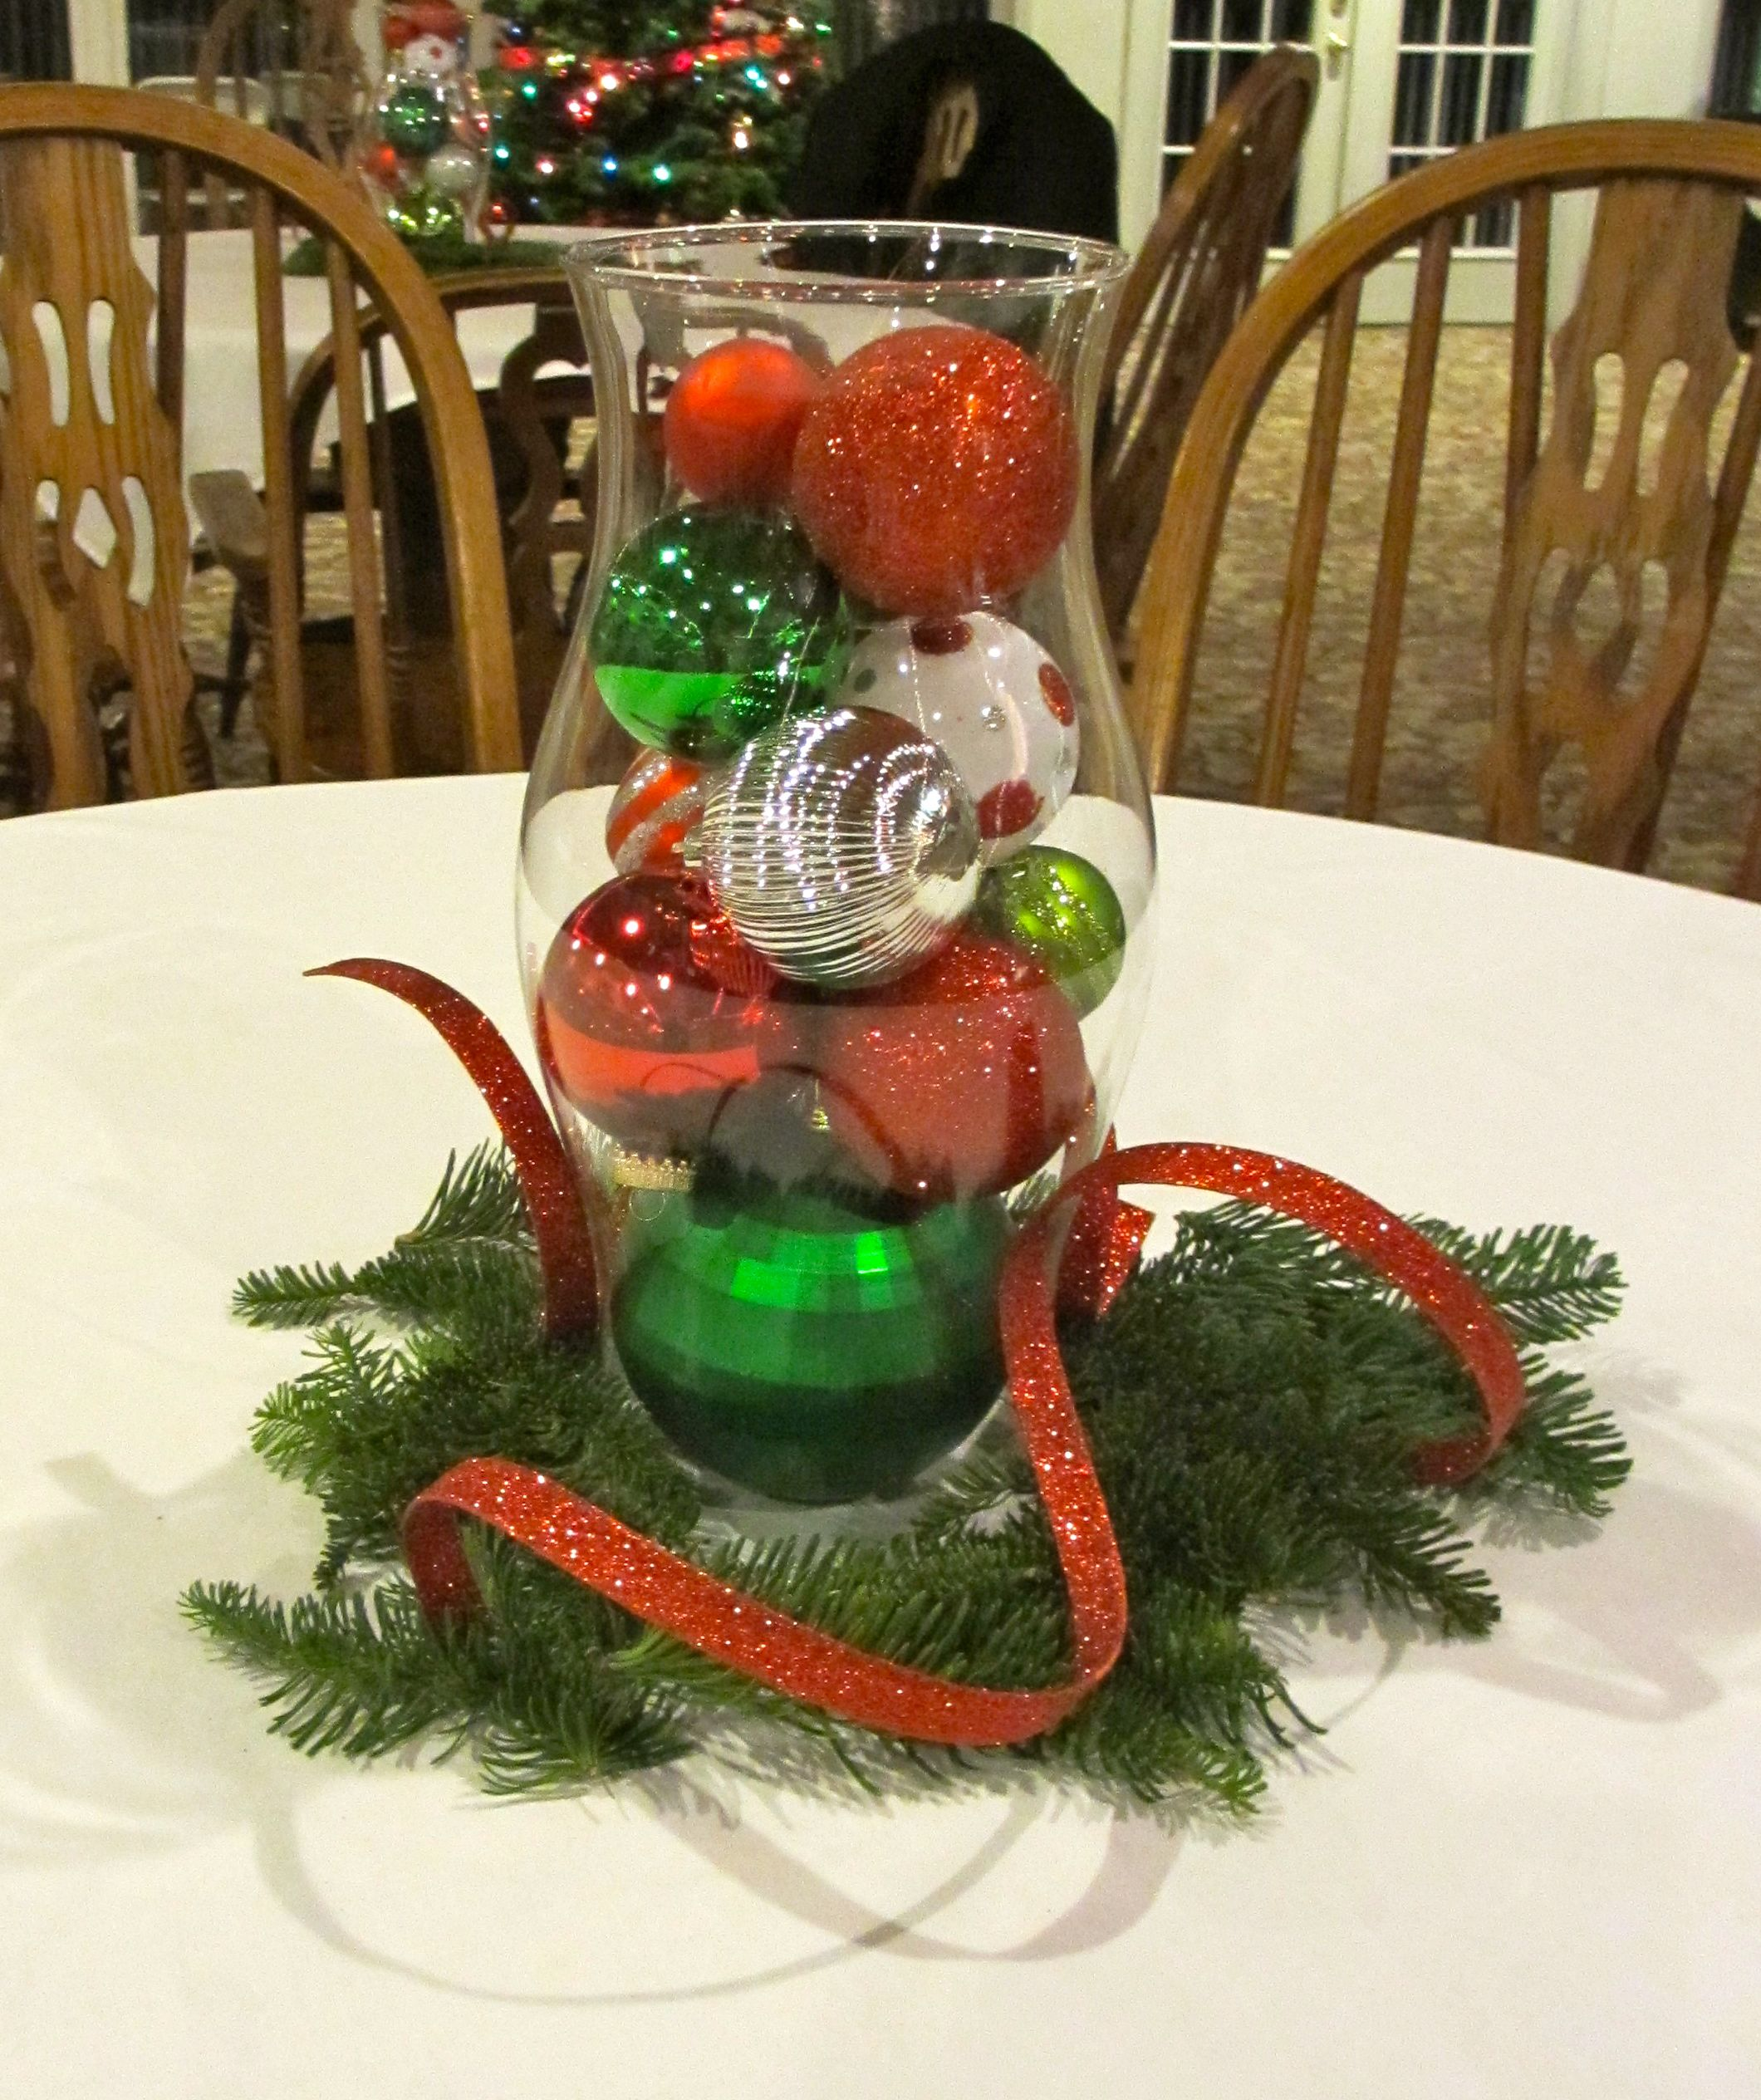 Xmas Table Centerpieces Ideas: Christmas Table Centerpiece With Fresh Greenery